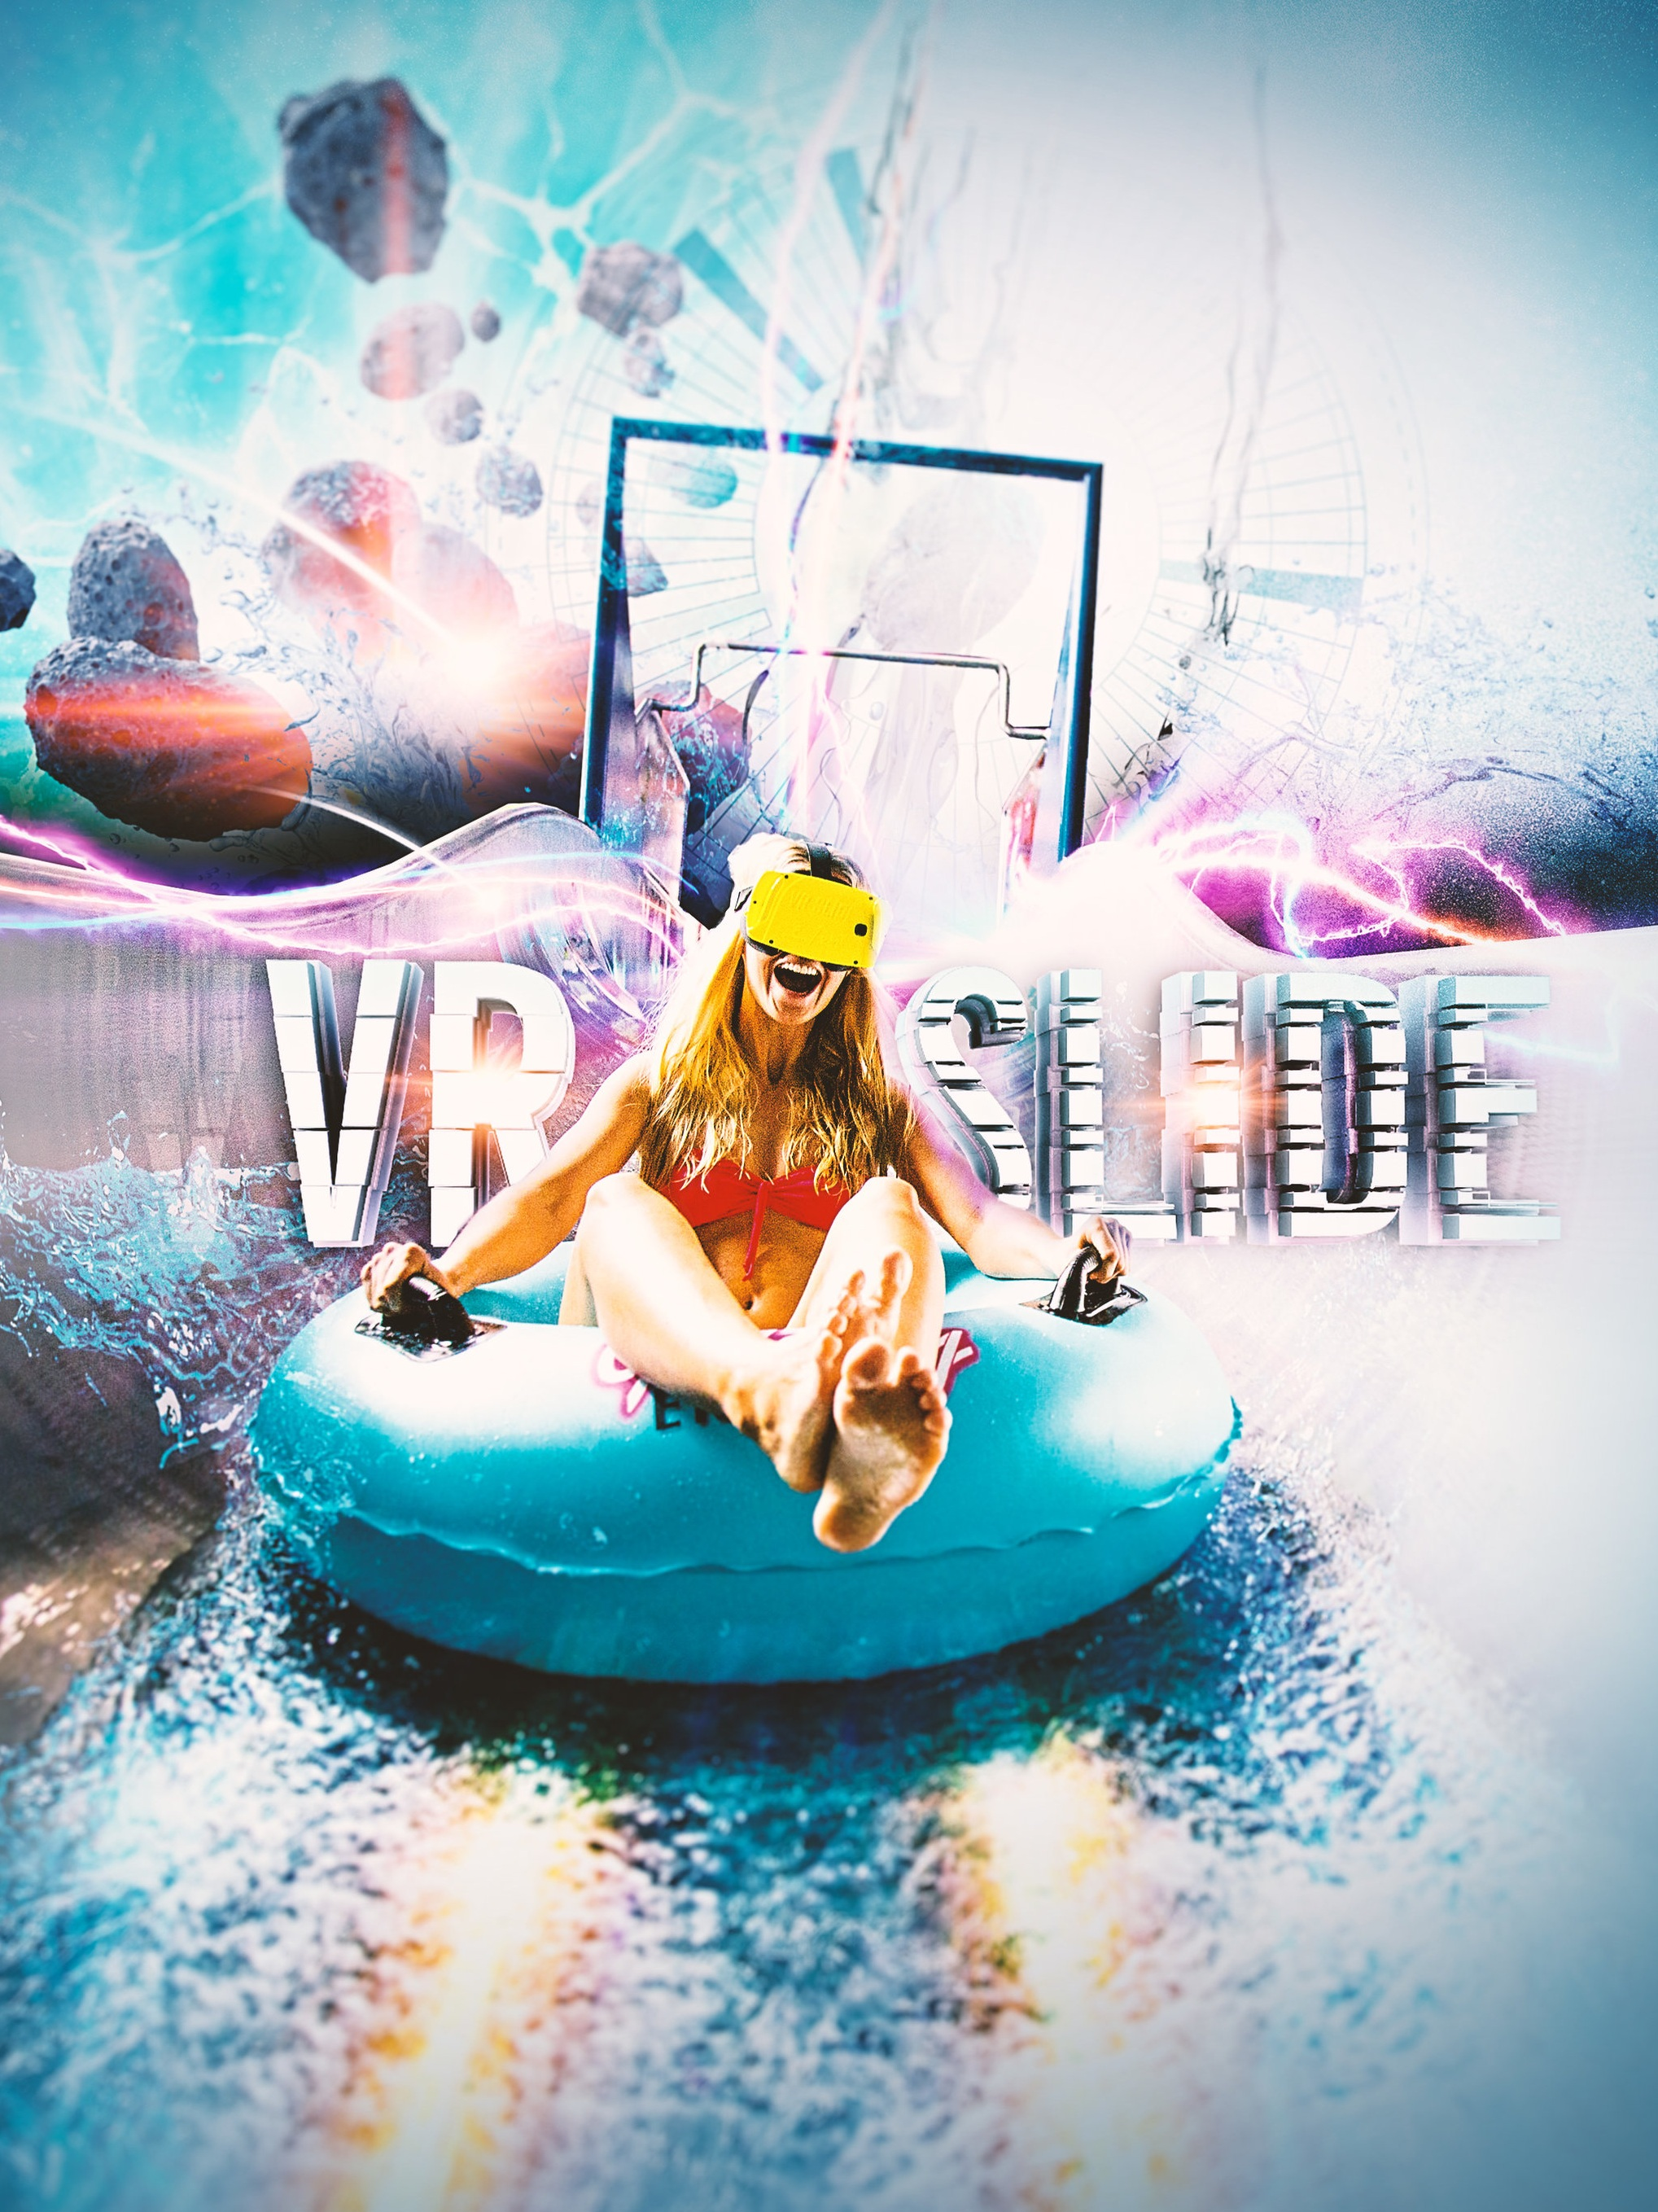 VRSlide System - The VRSlide system has welcomed over 260,000 paying guests in the first fifteen months of operation at Therme Erding, Aquapalace Prague and Sonnentherme Lutzmannsburg.Learn how we built the world's first commercial VR Waterslide experience and find out how you can bring it to your destination.Learn more ➝